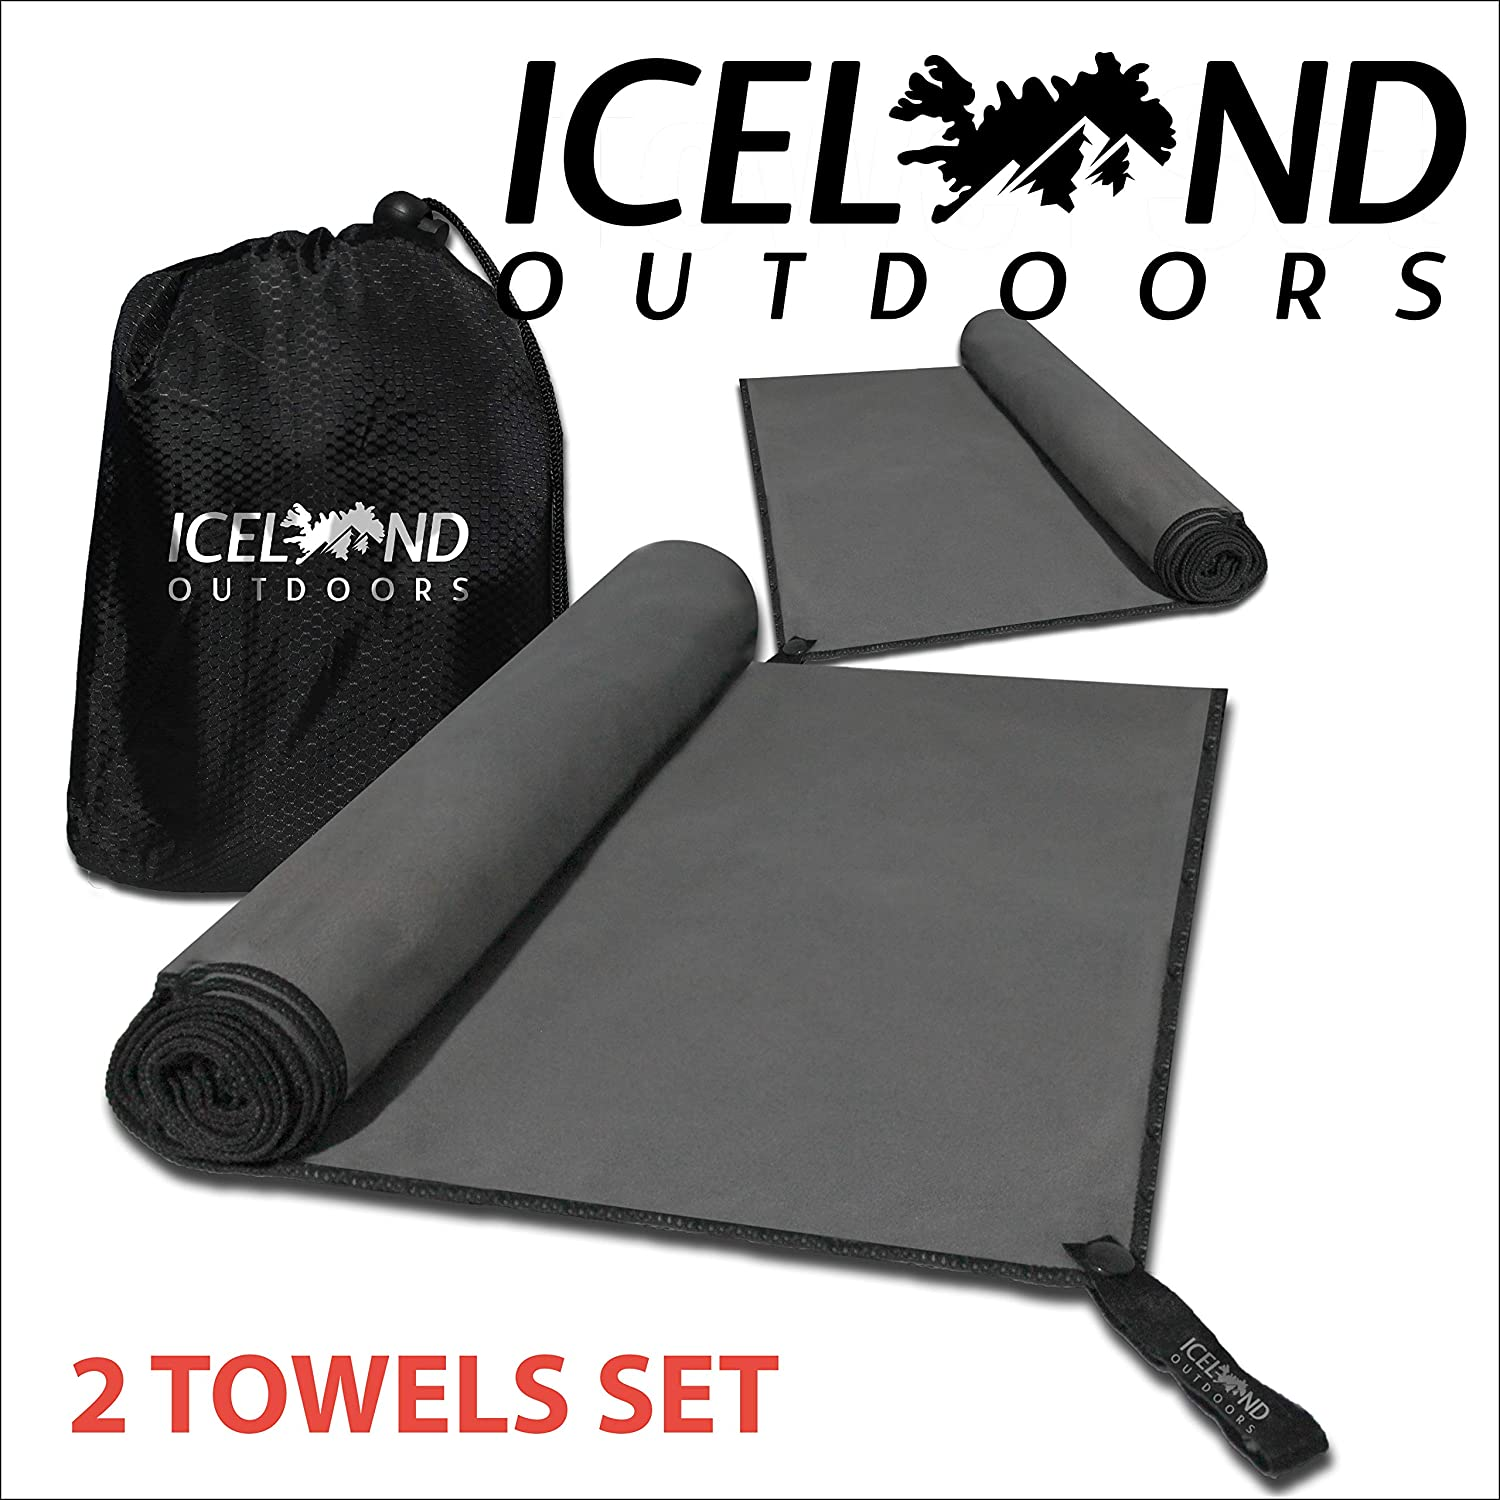 Iceland Outdoors Quick Dry Camping Towel Set